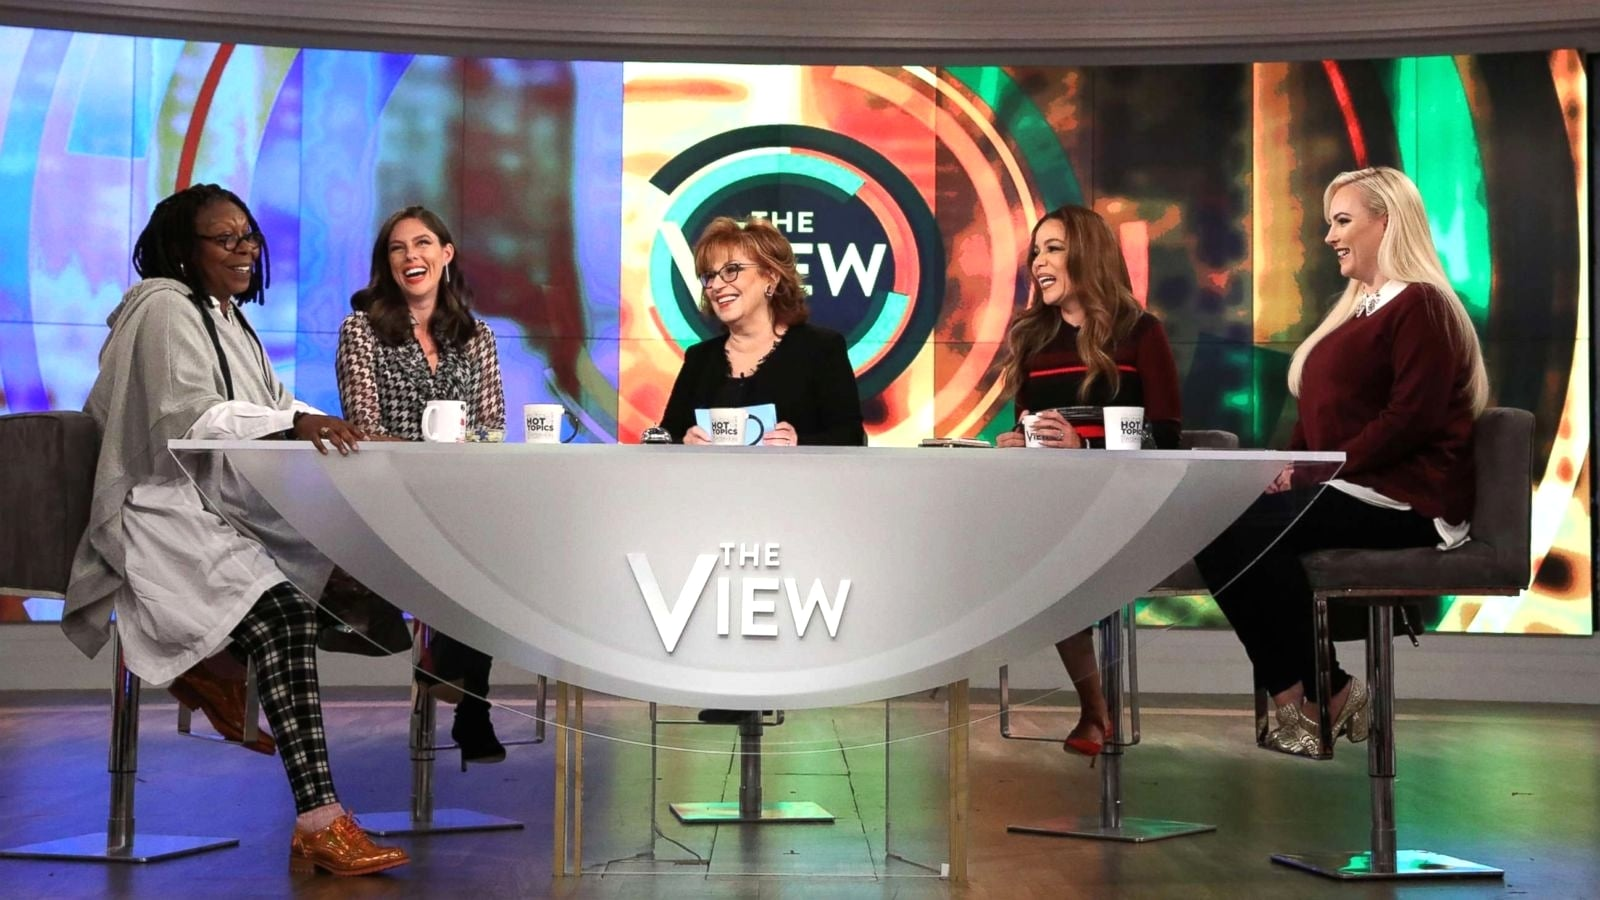 The View - Season 3 Episode 302 : Season 3, Episode 302